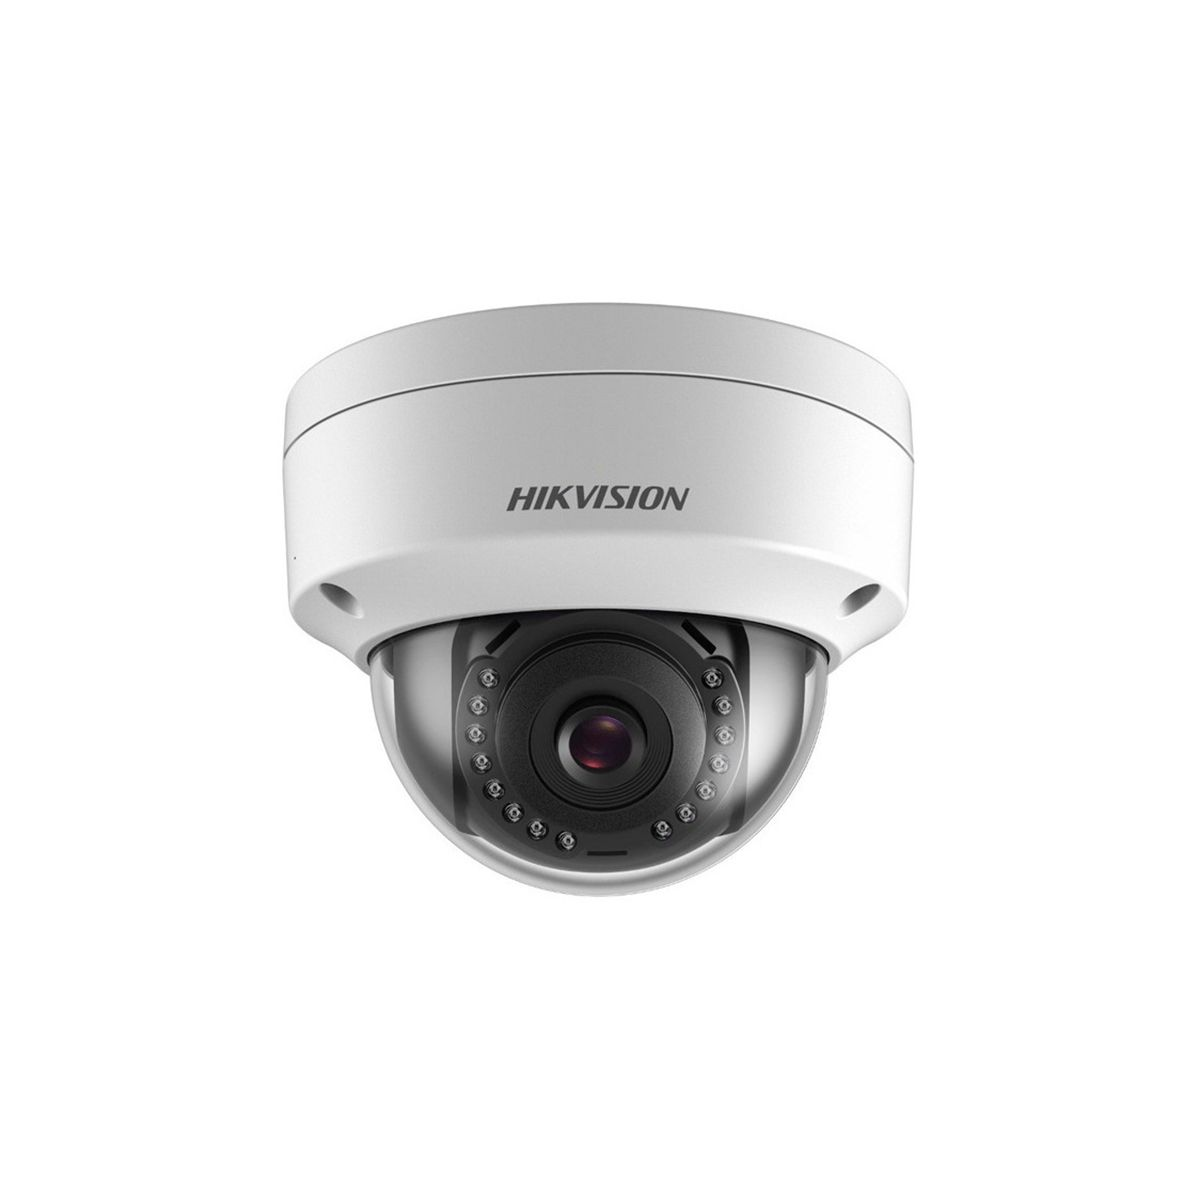 Cámara IP Domo Hikvision DS-2CD1101-I 2.8MM